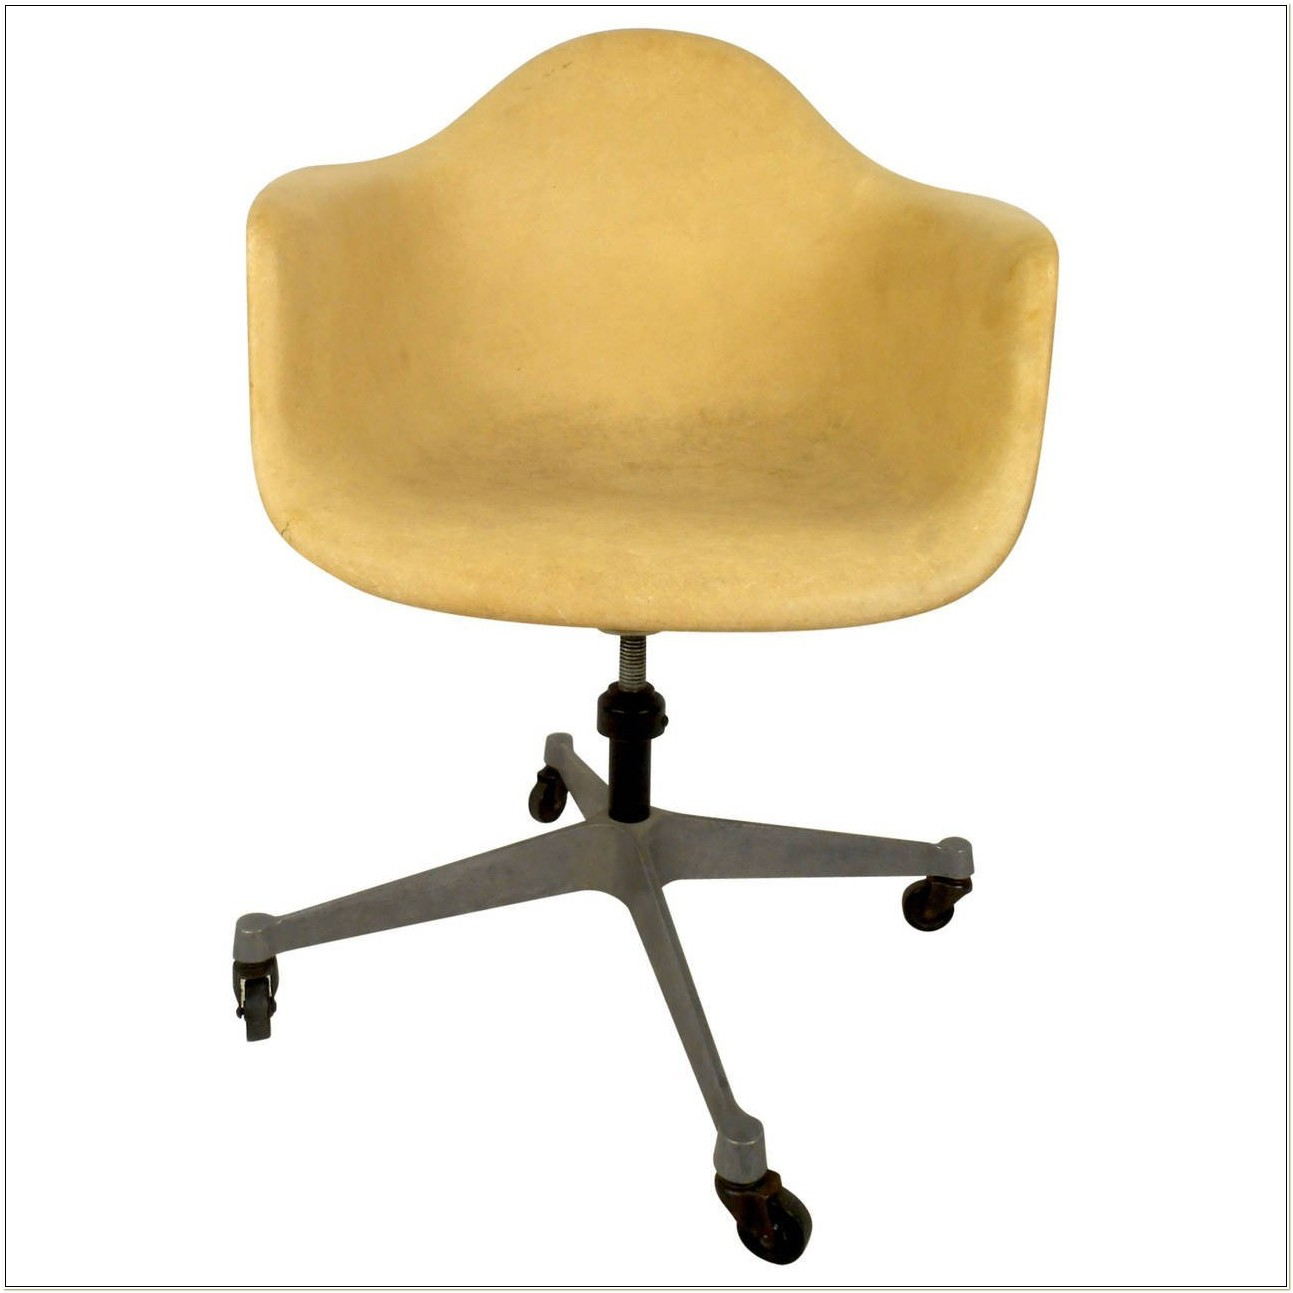 Herman Miller Eames Shell Chair